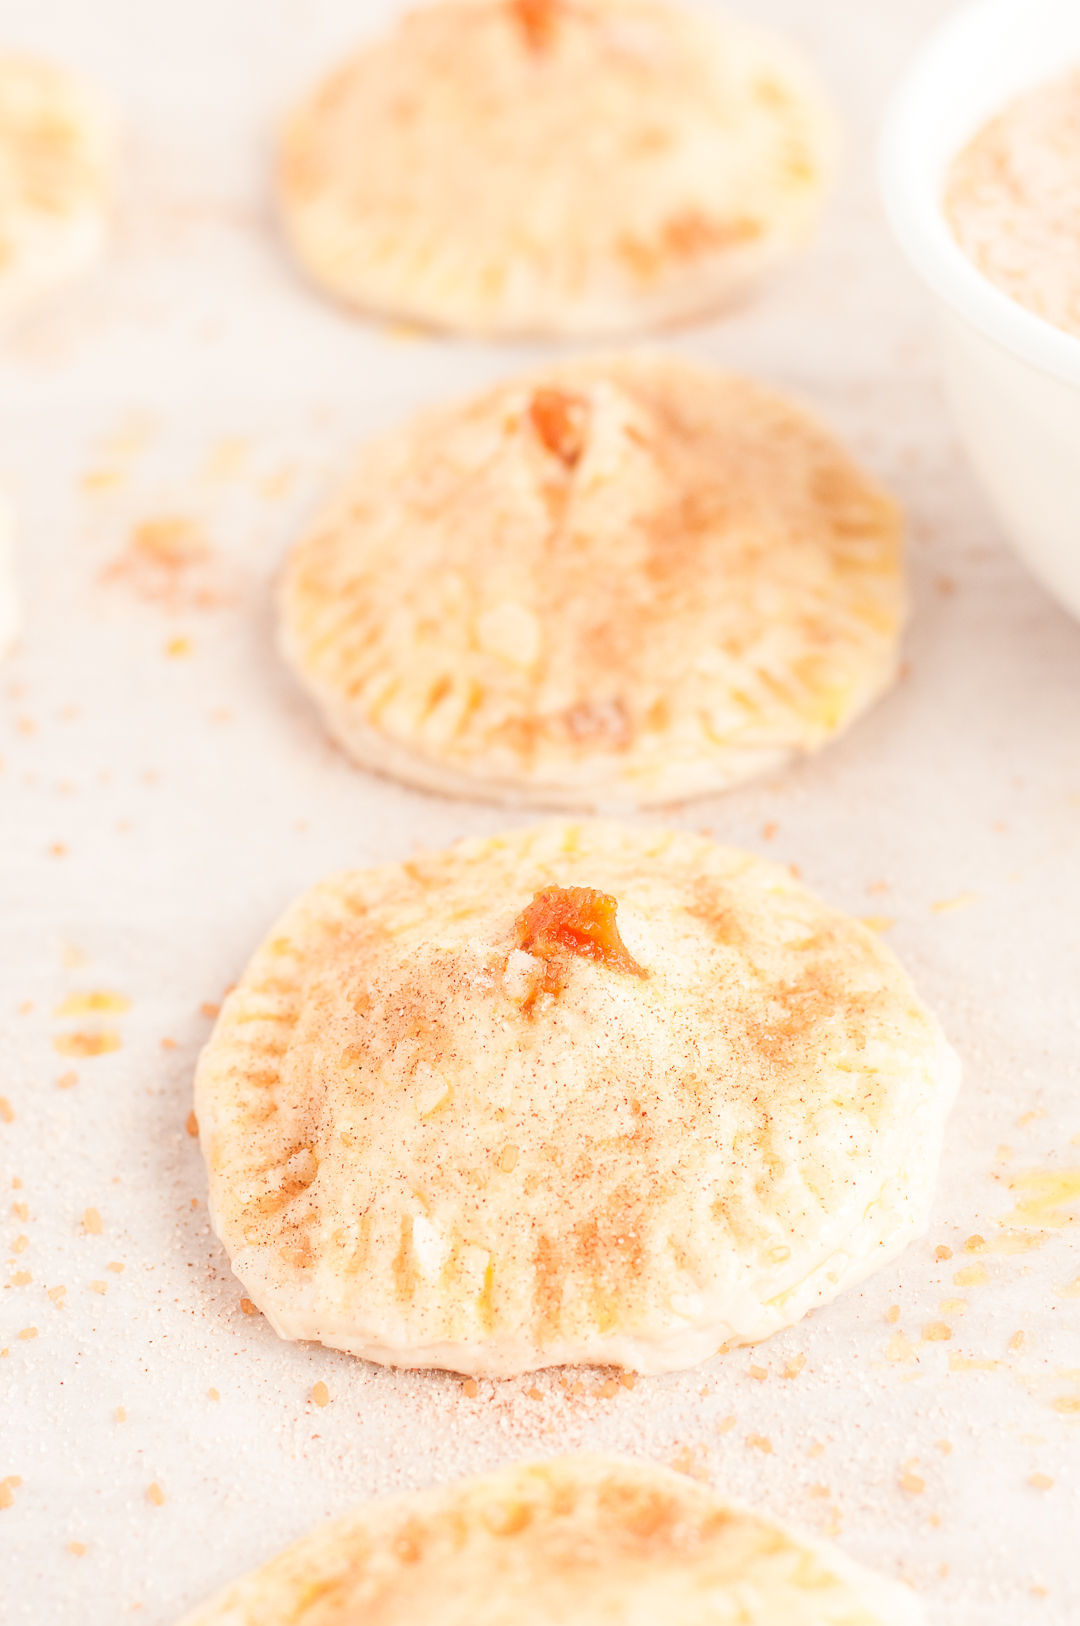 adding sugar and spice blend to mini pies